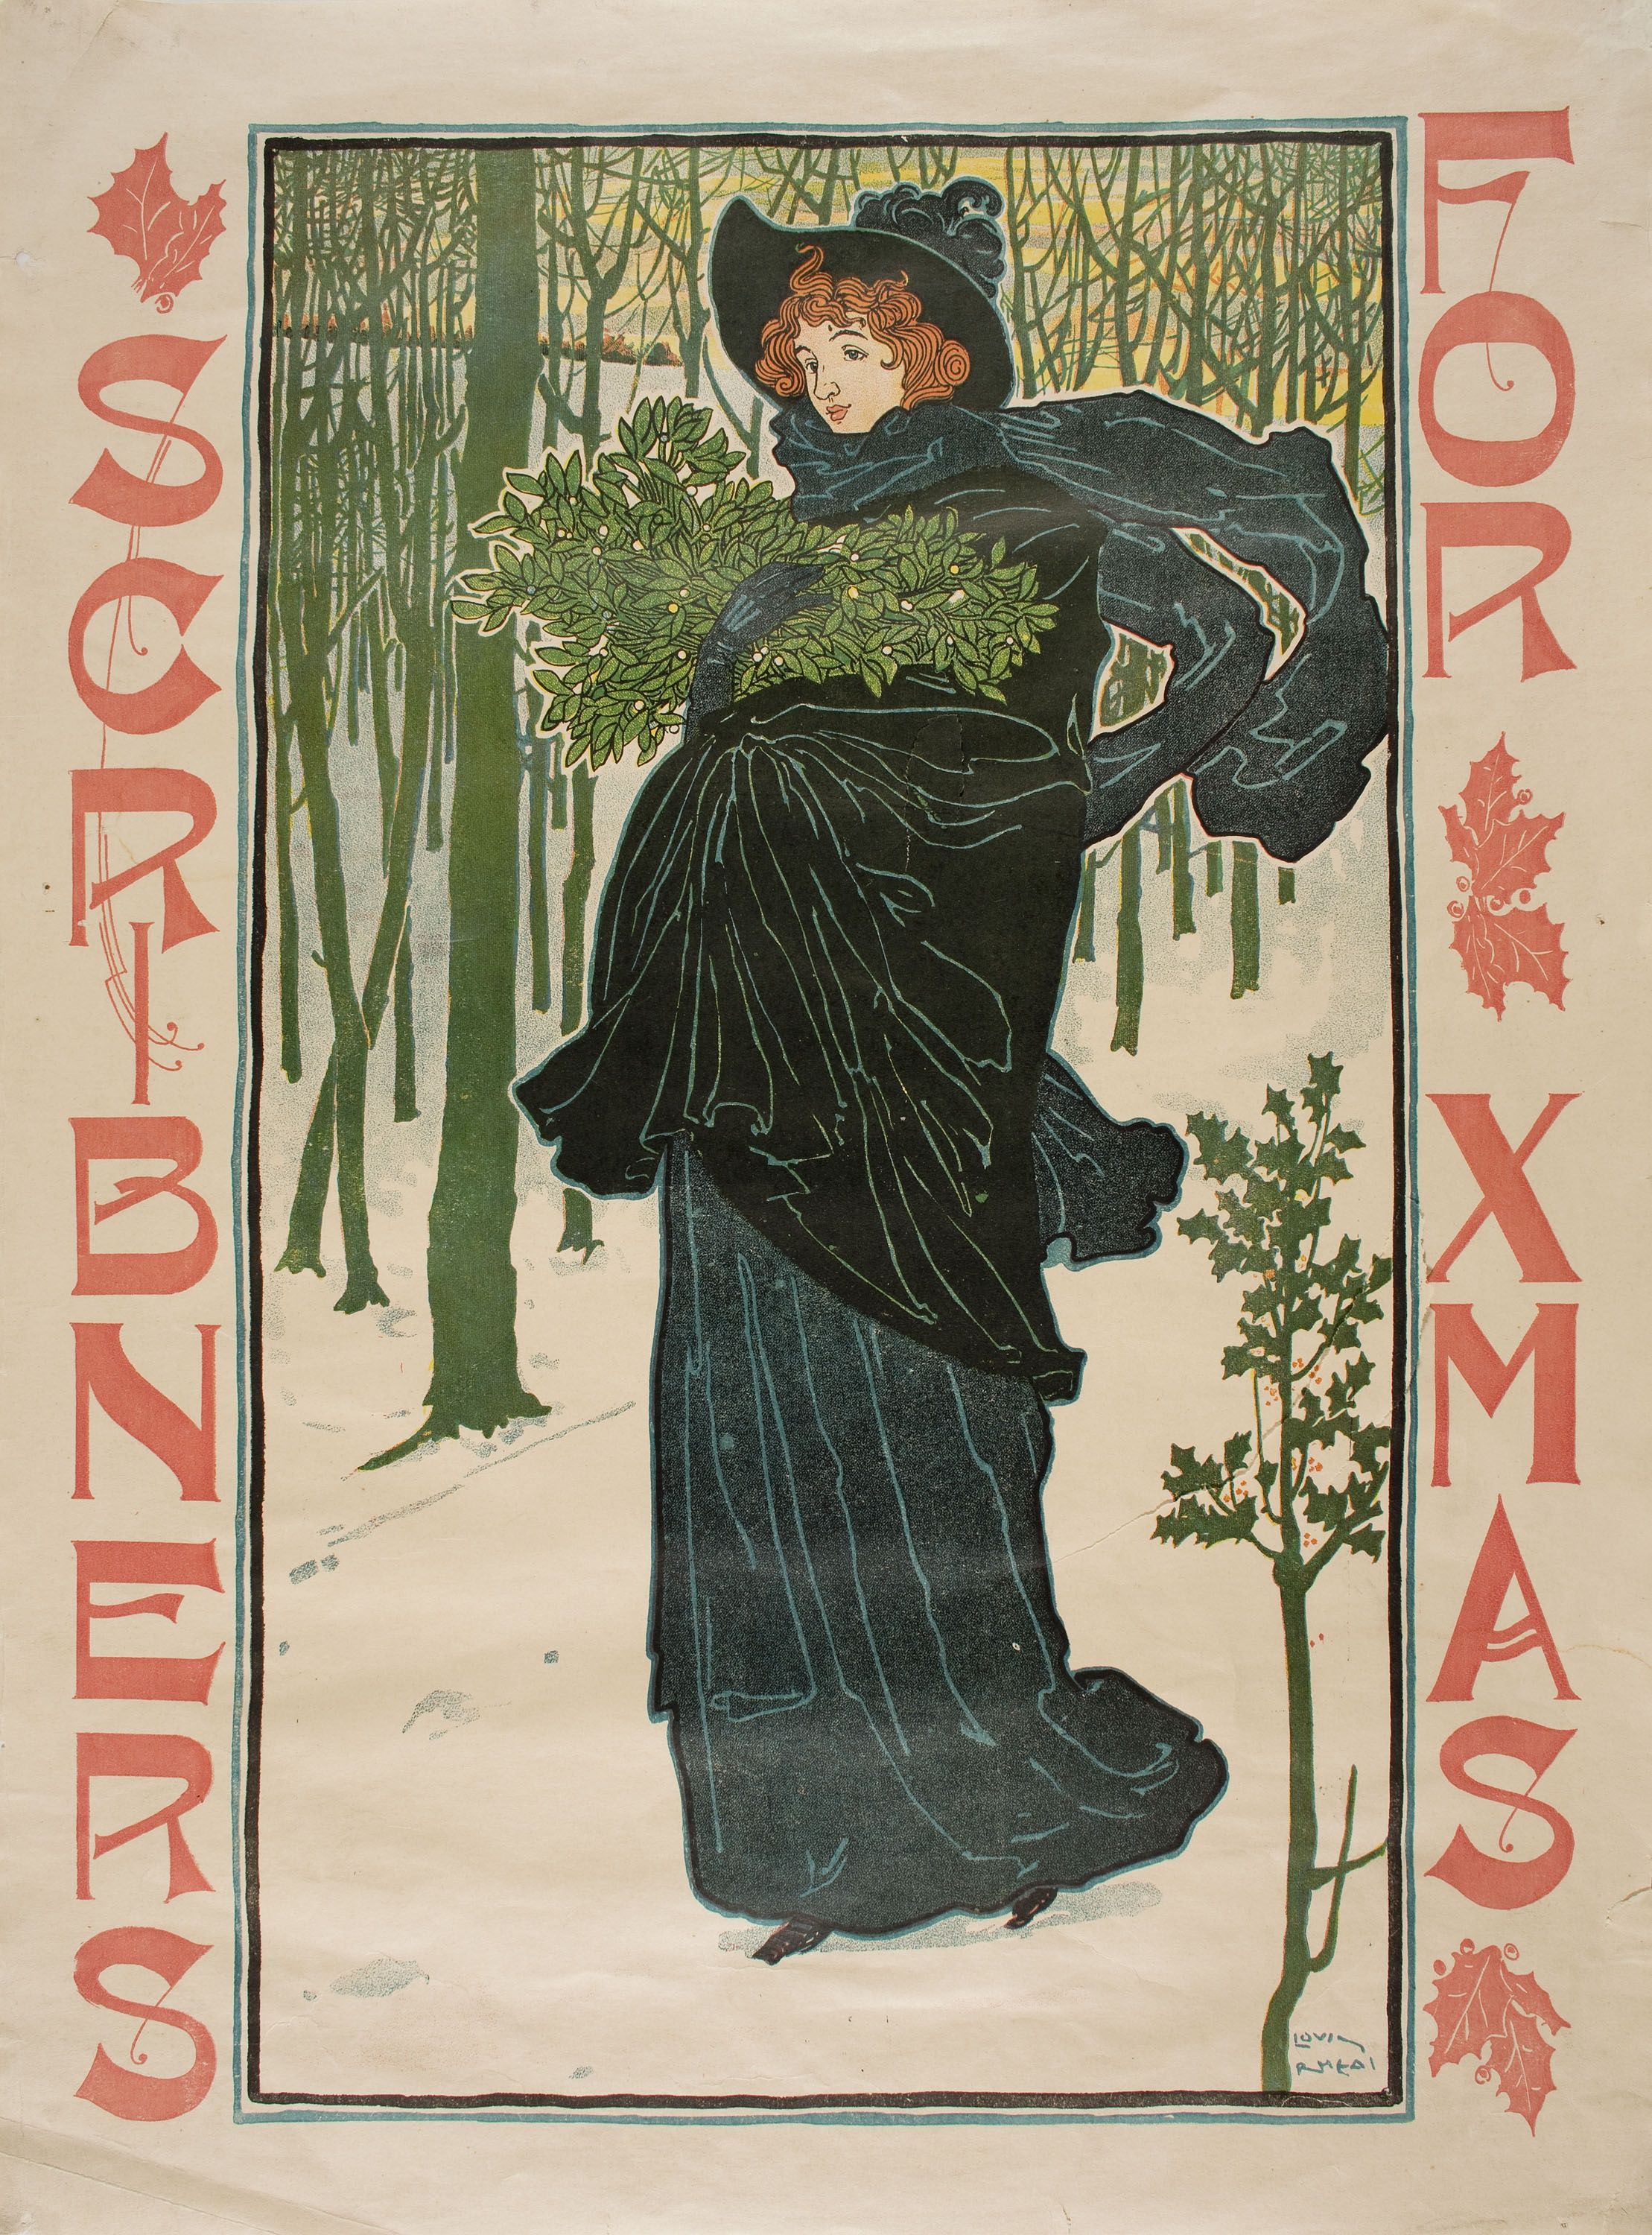 Louis John Rhead - Scribners for Xmas - 1895